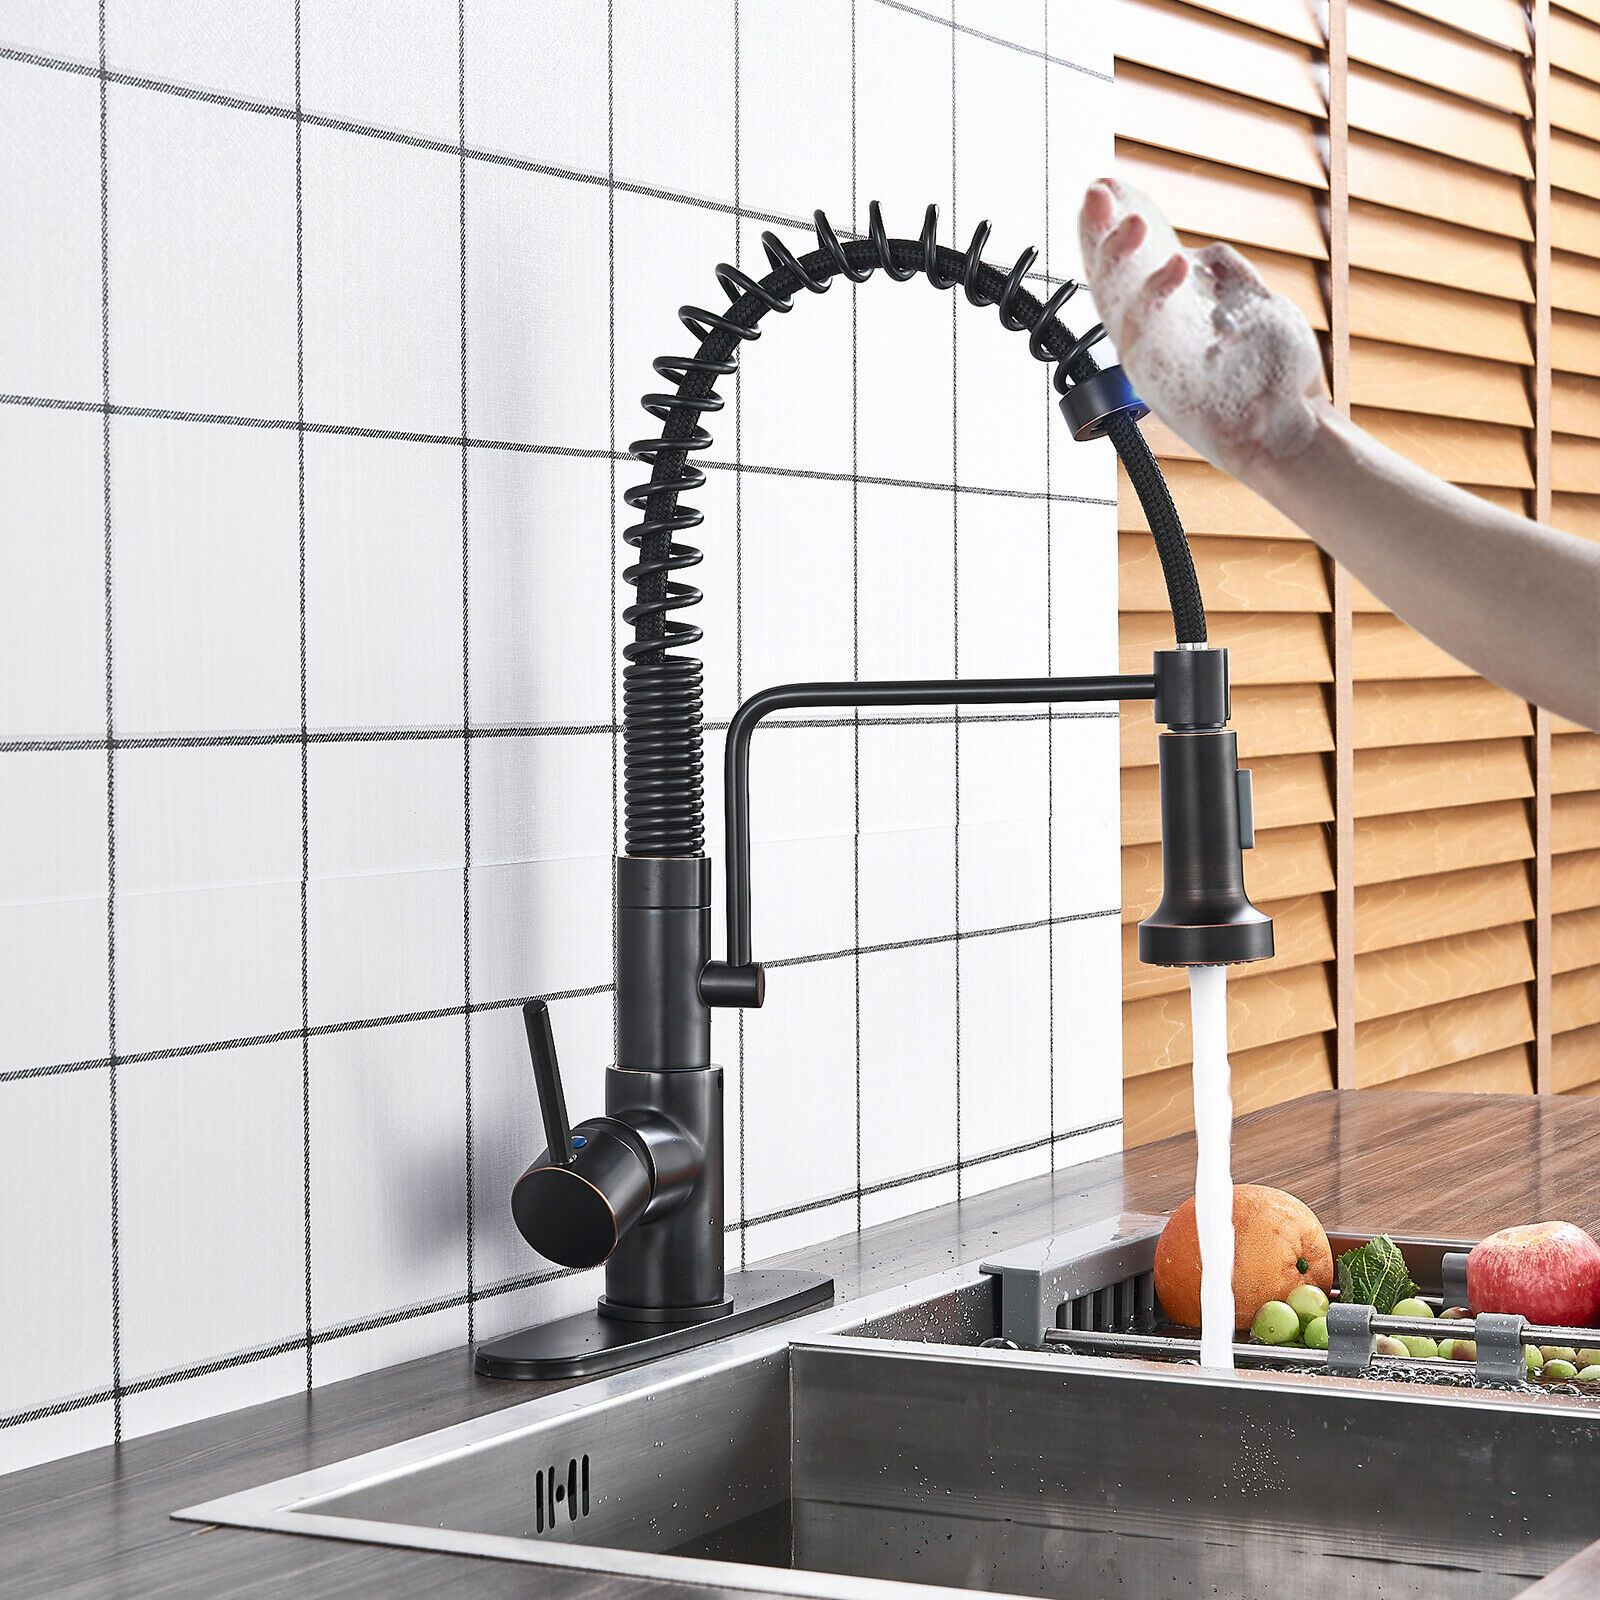 Matte Black Touch Sensor Kitchen Sink Faucet Pull Out Spray Swivel